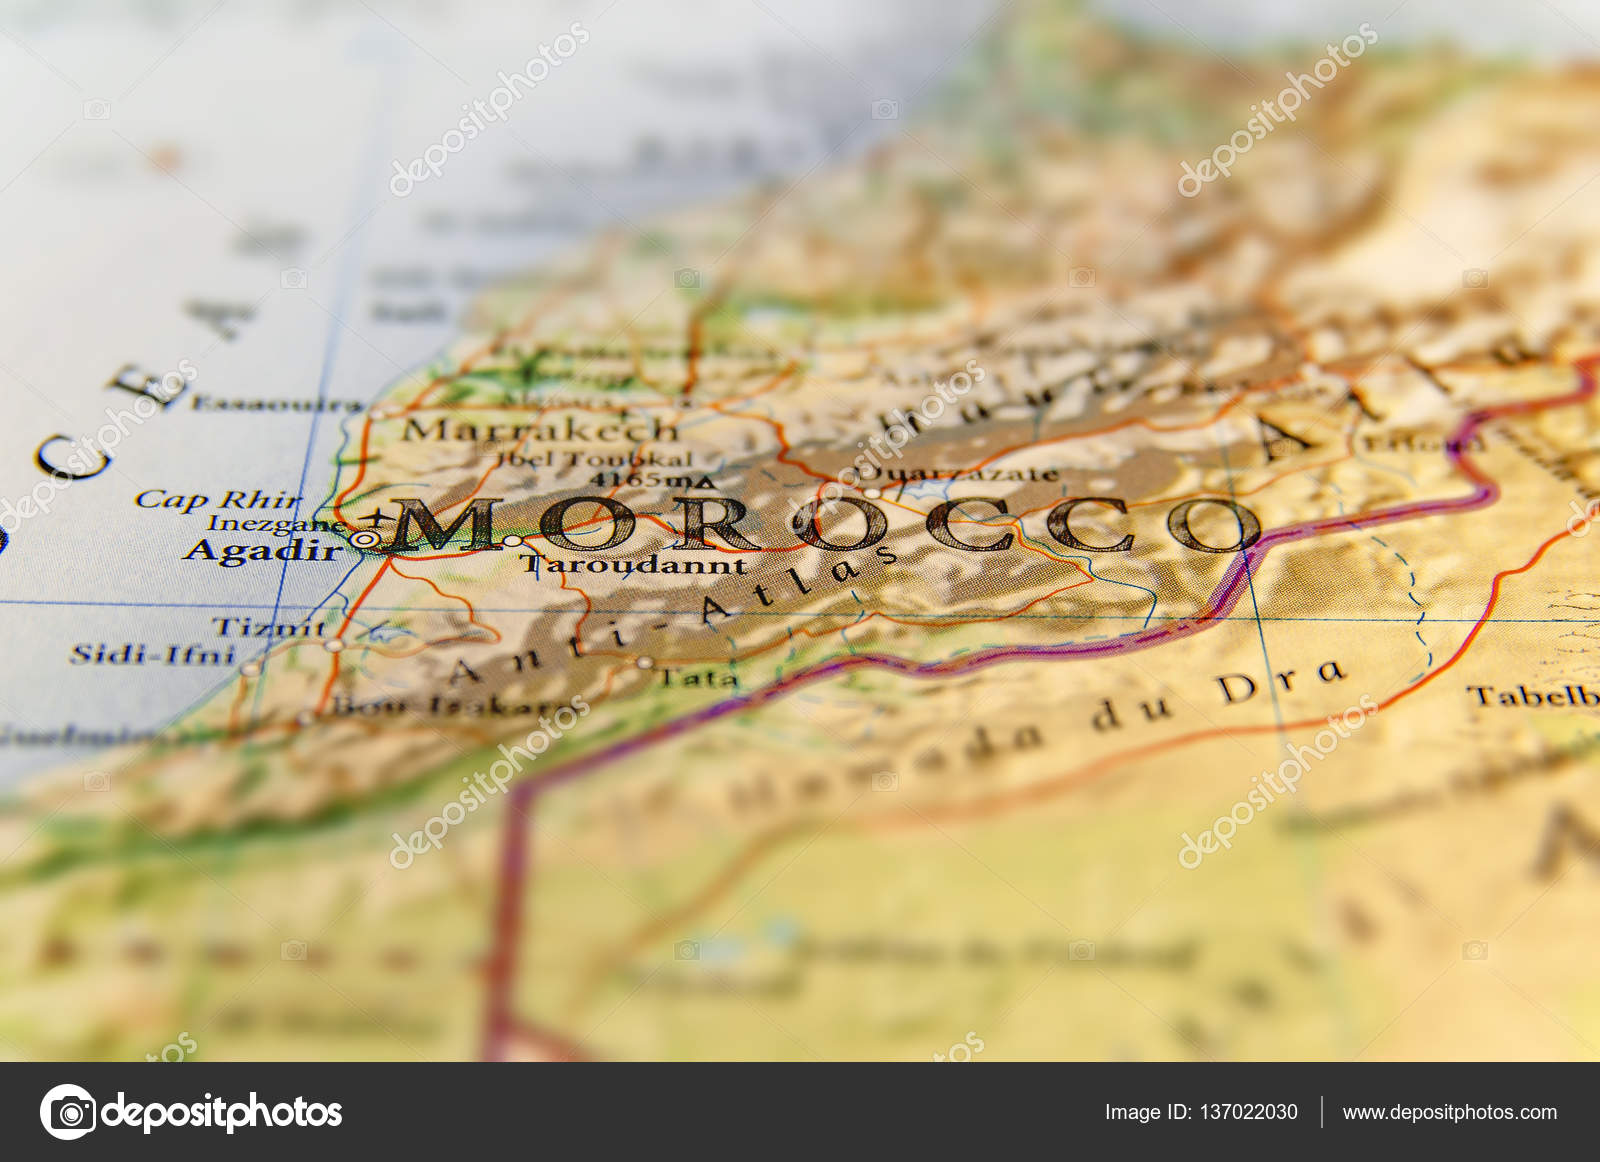 Morocco With Cities X area maps